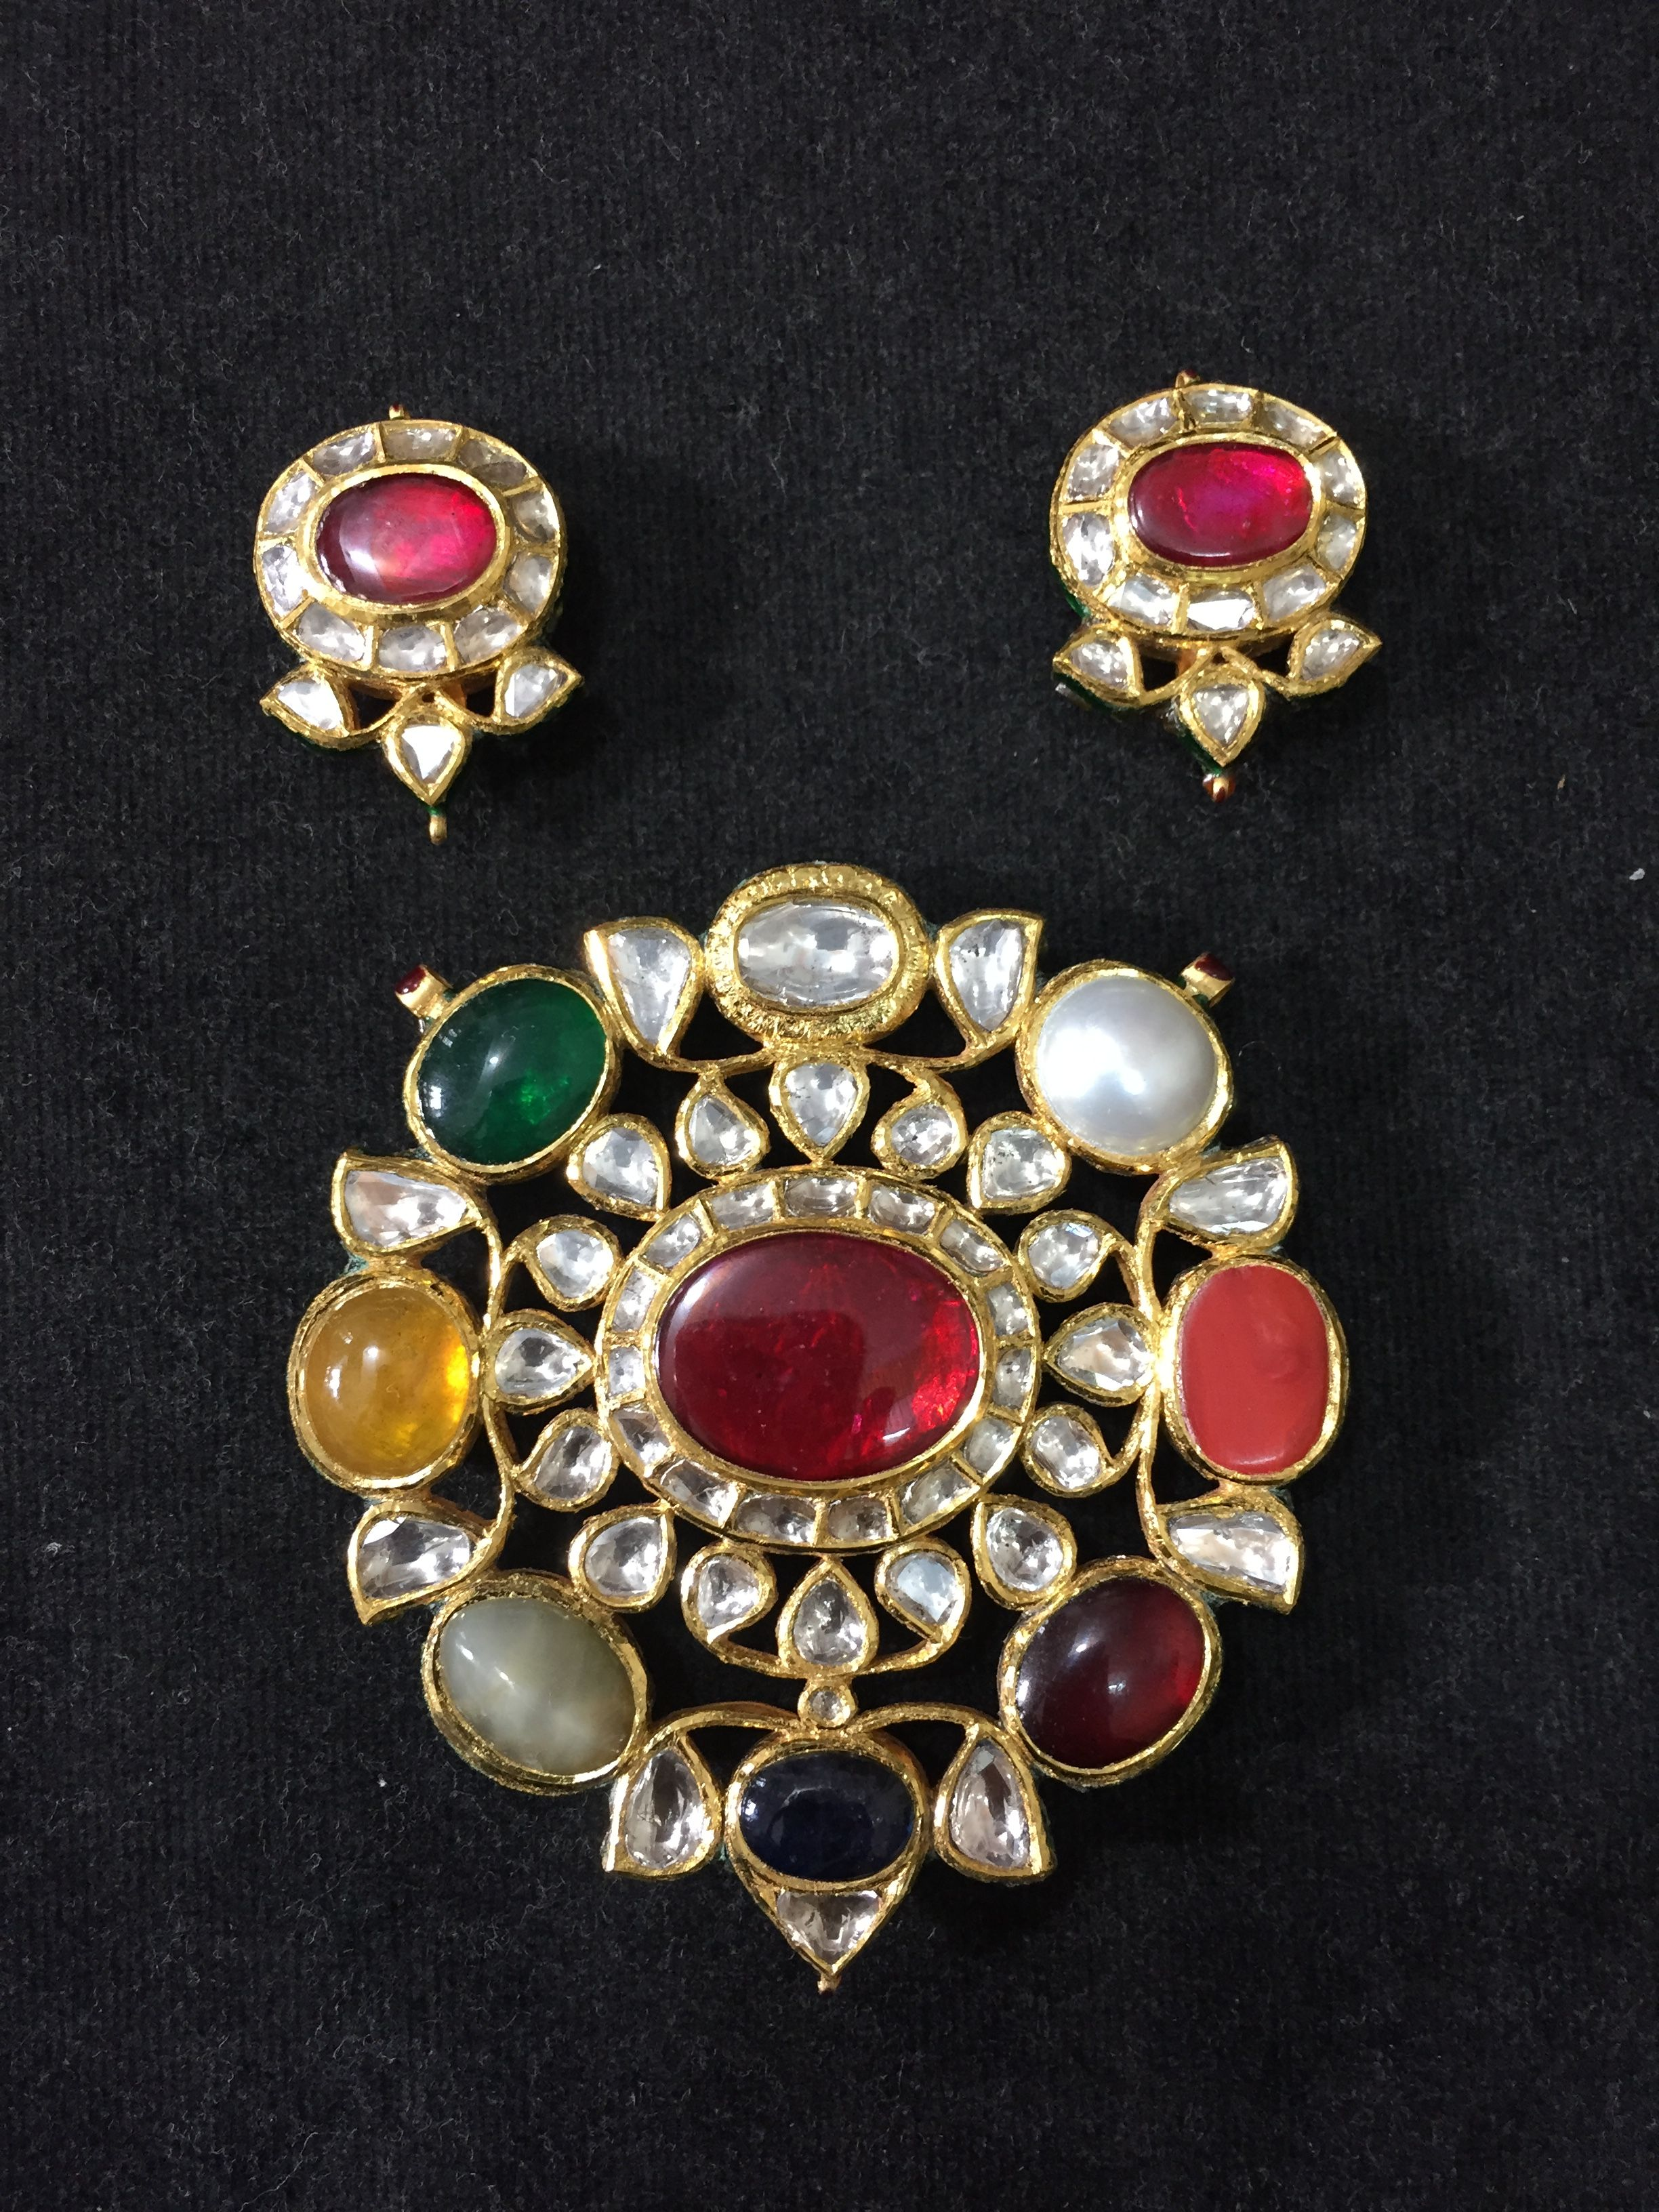 Navratan pendant and earings setted in gold with nine precious